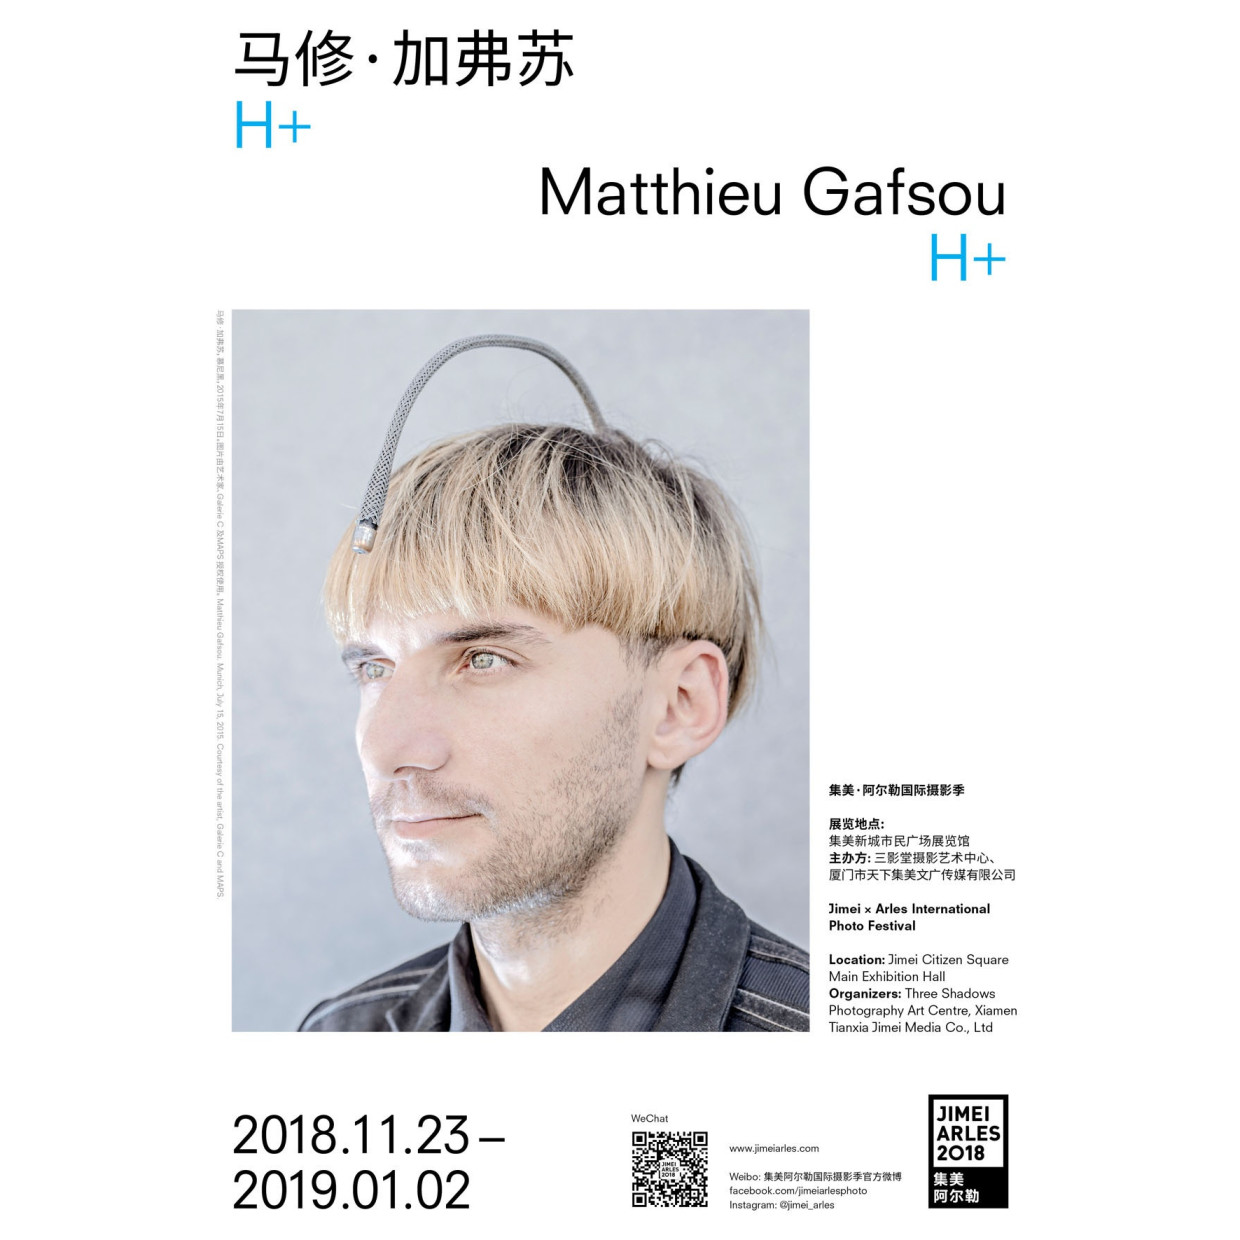 MATTHIEU GAFSOU H+ H+ focuses on transhumanism, a movement advocating the use of science and technology to enhance humans' physical...